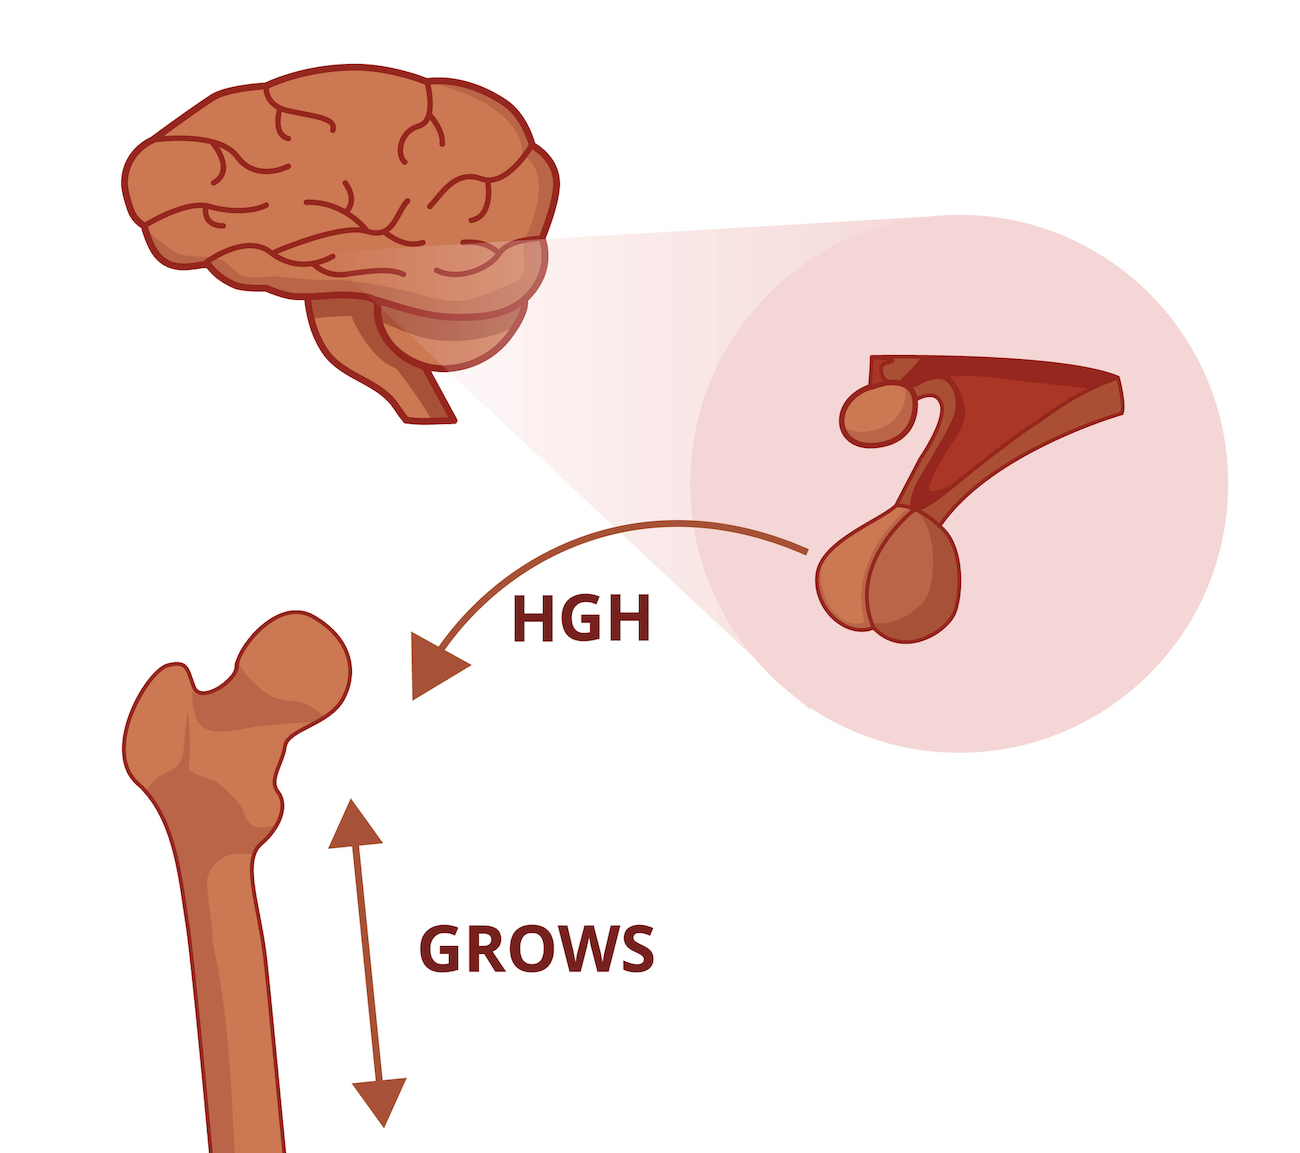 HGH bone growth